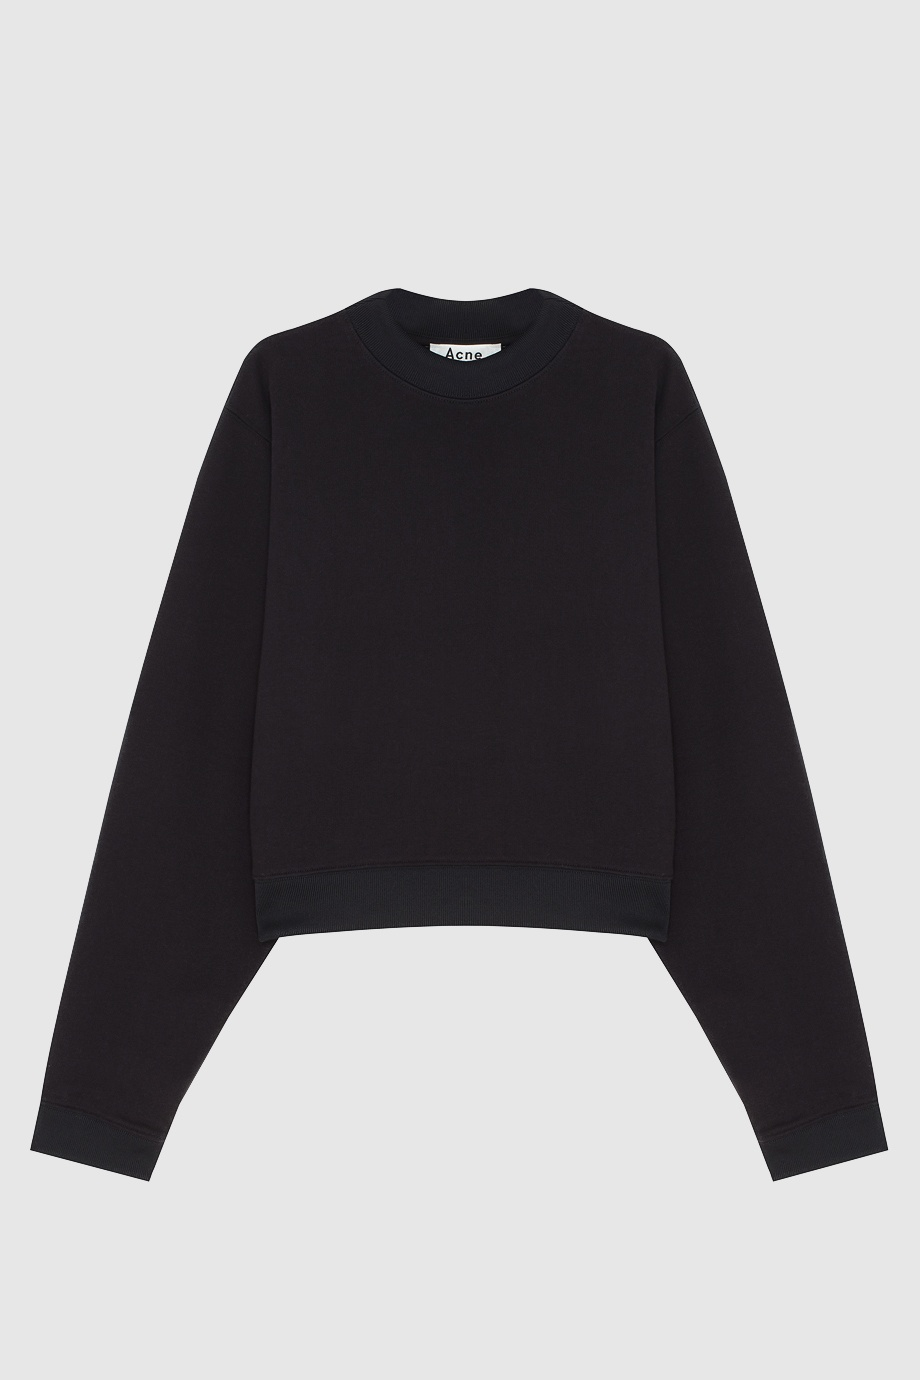 Свитшот Bird U Fleece Acne Studios (фото)